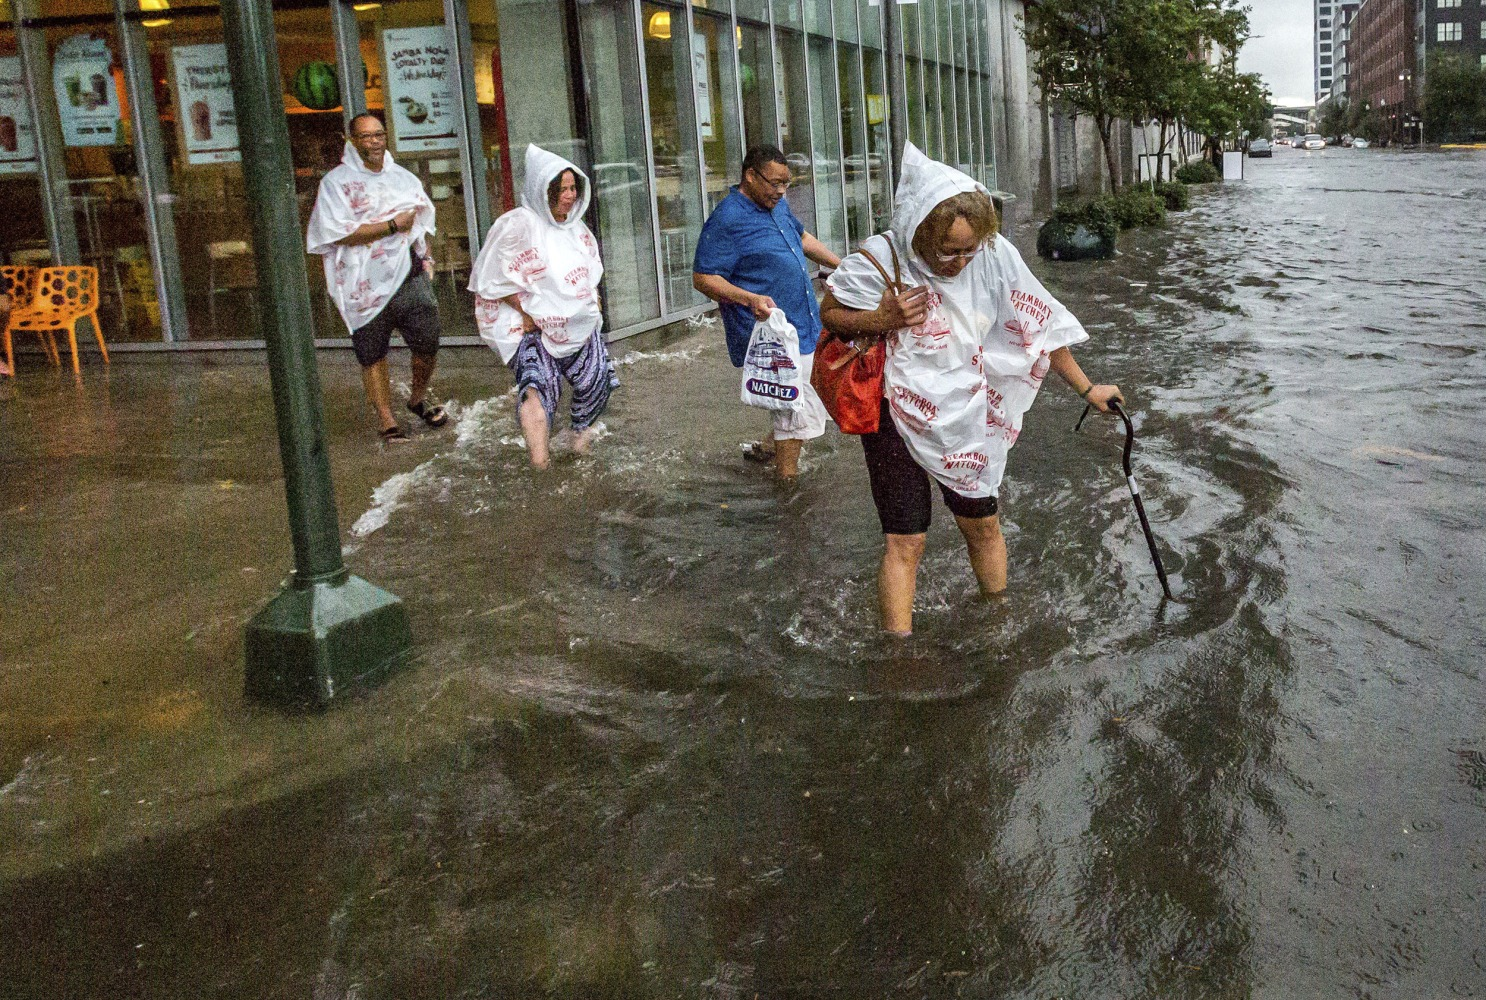 Some streets in New Orleans are flooding as Harvey reemerges in Gulf